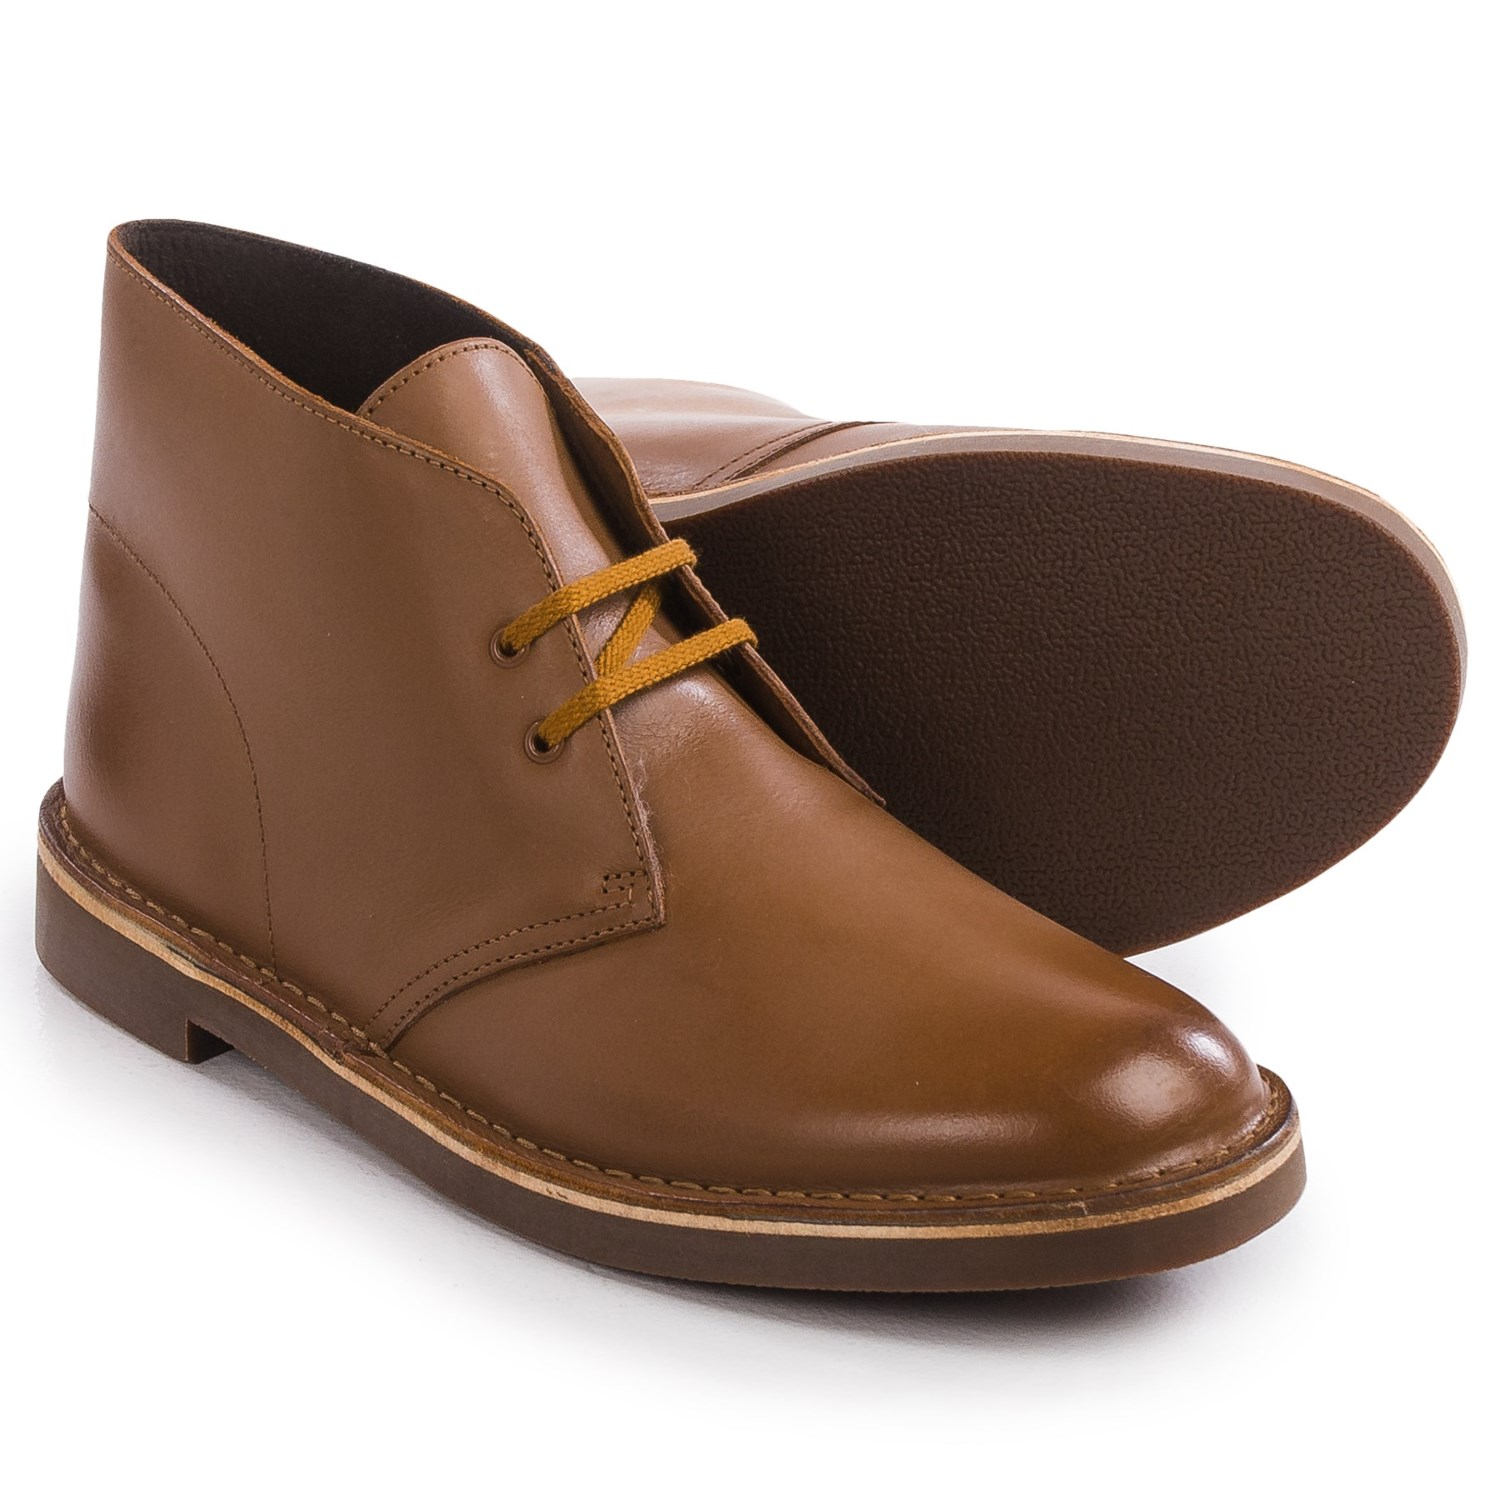 two tight for wide feet - Review of Clarks Bushacre 2 Chukka Boots ...